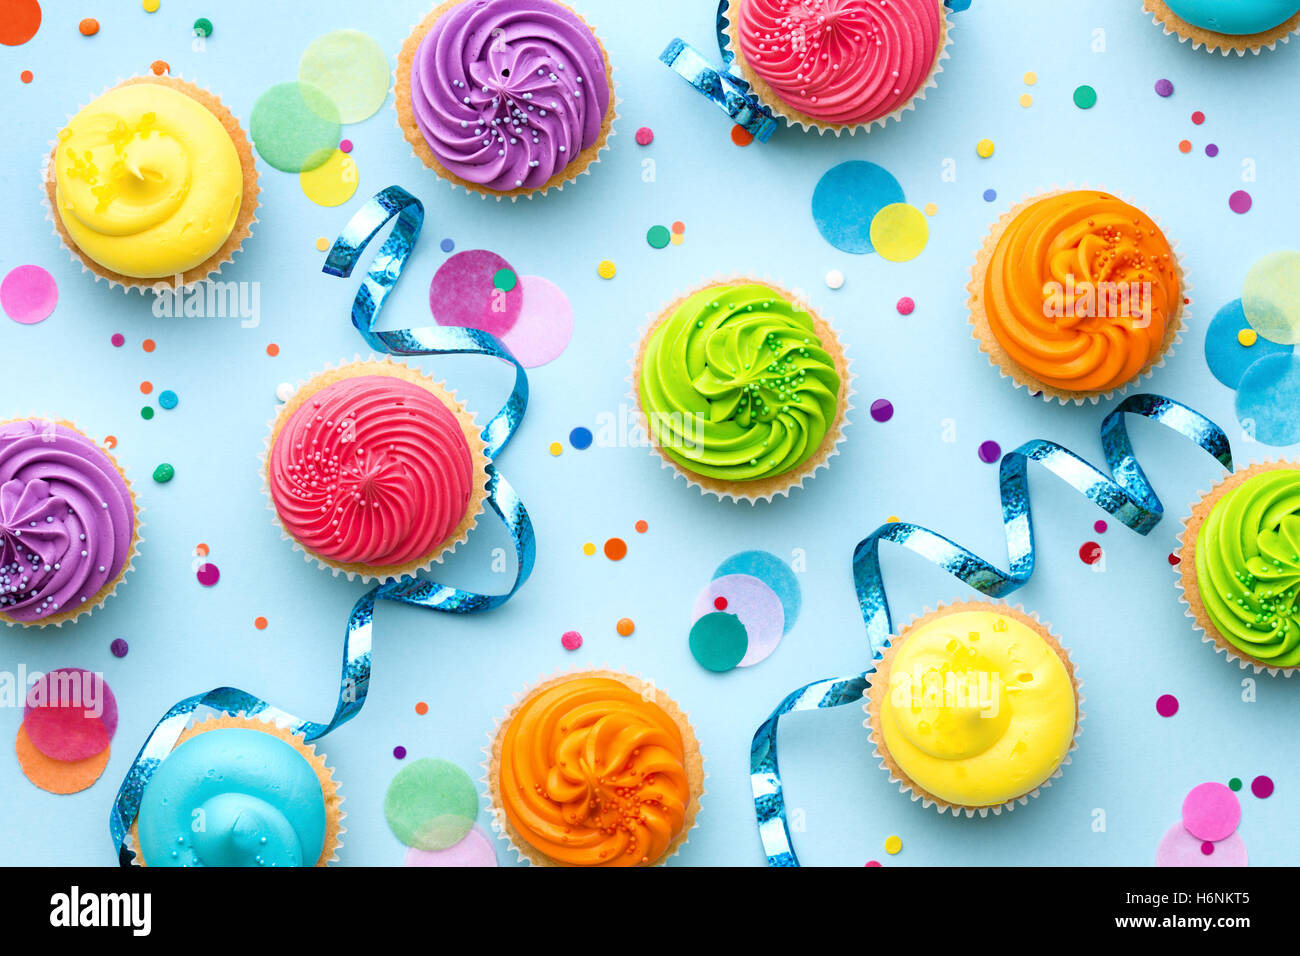 Colorful cupcake party background on blue - Stock Image